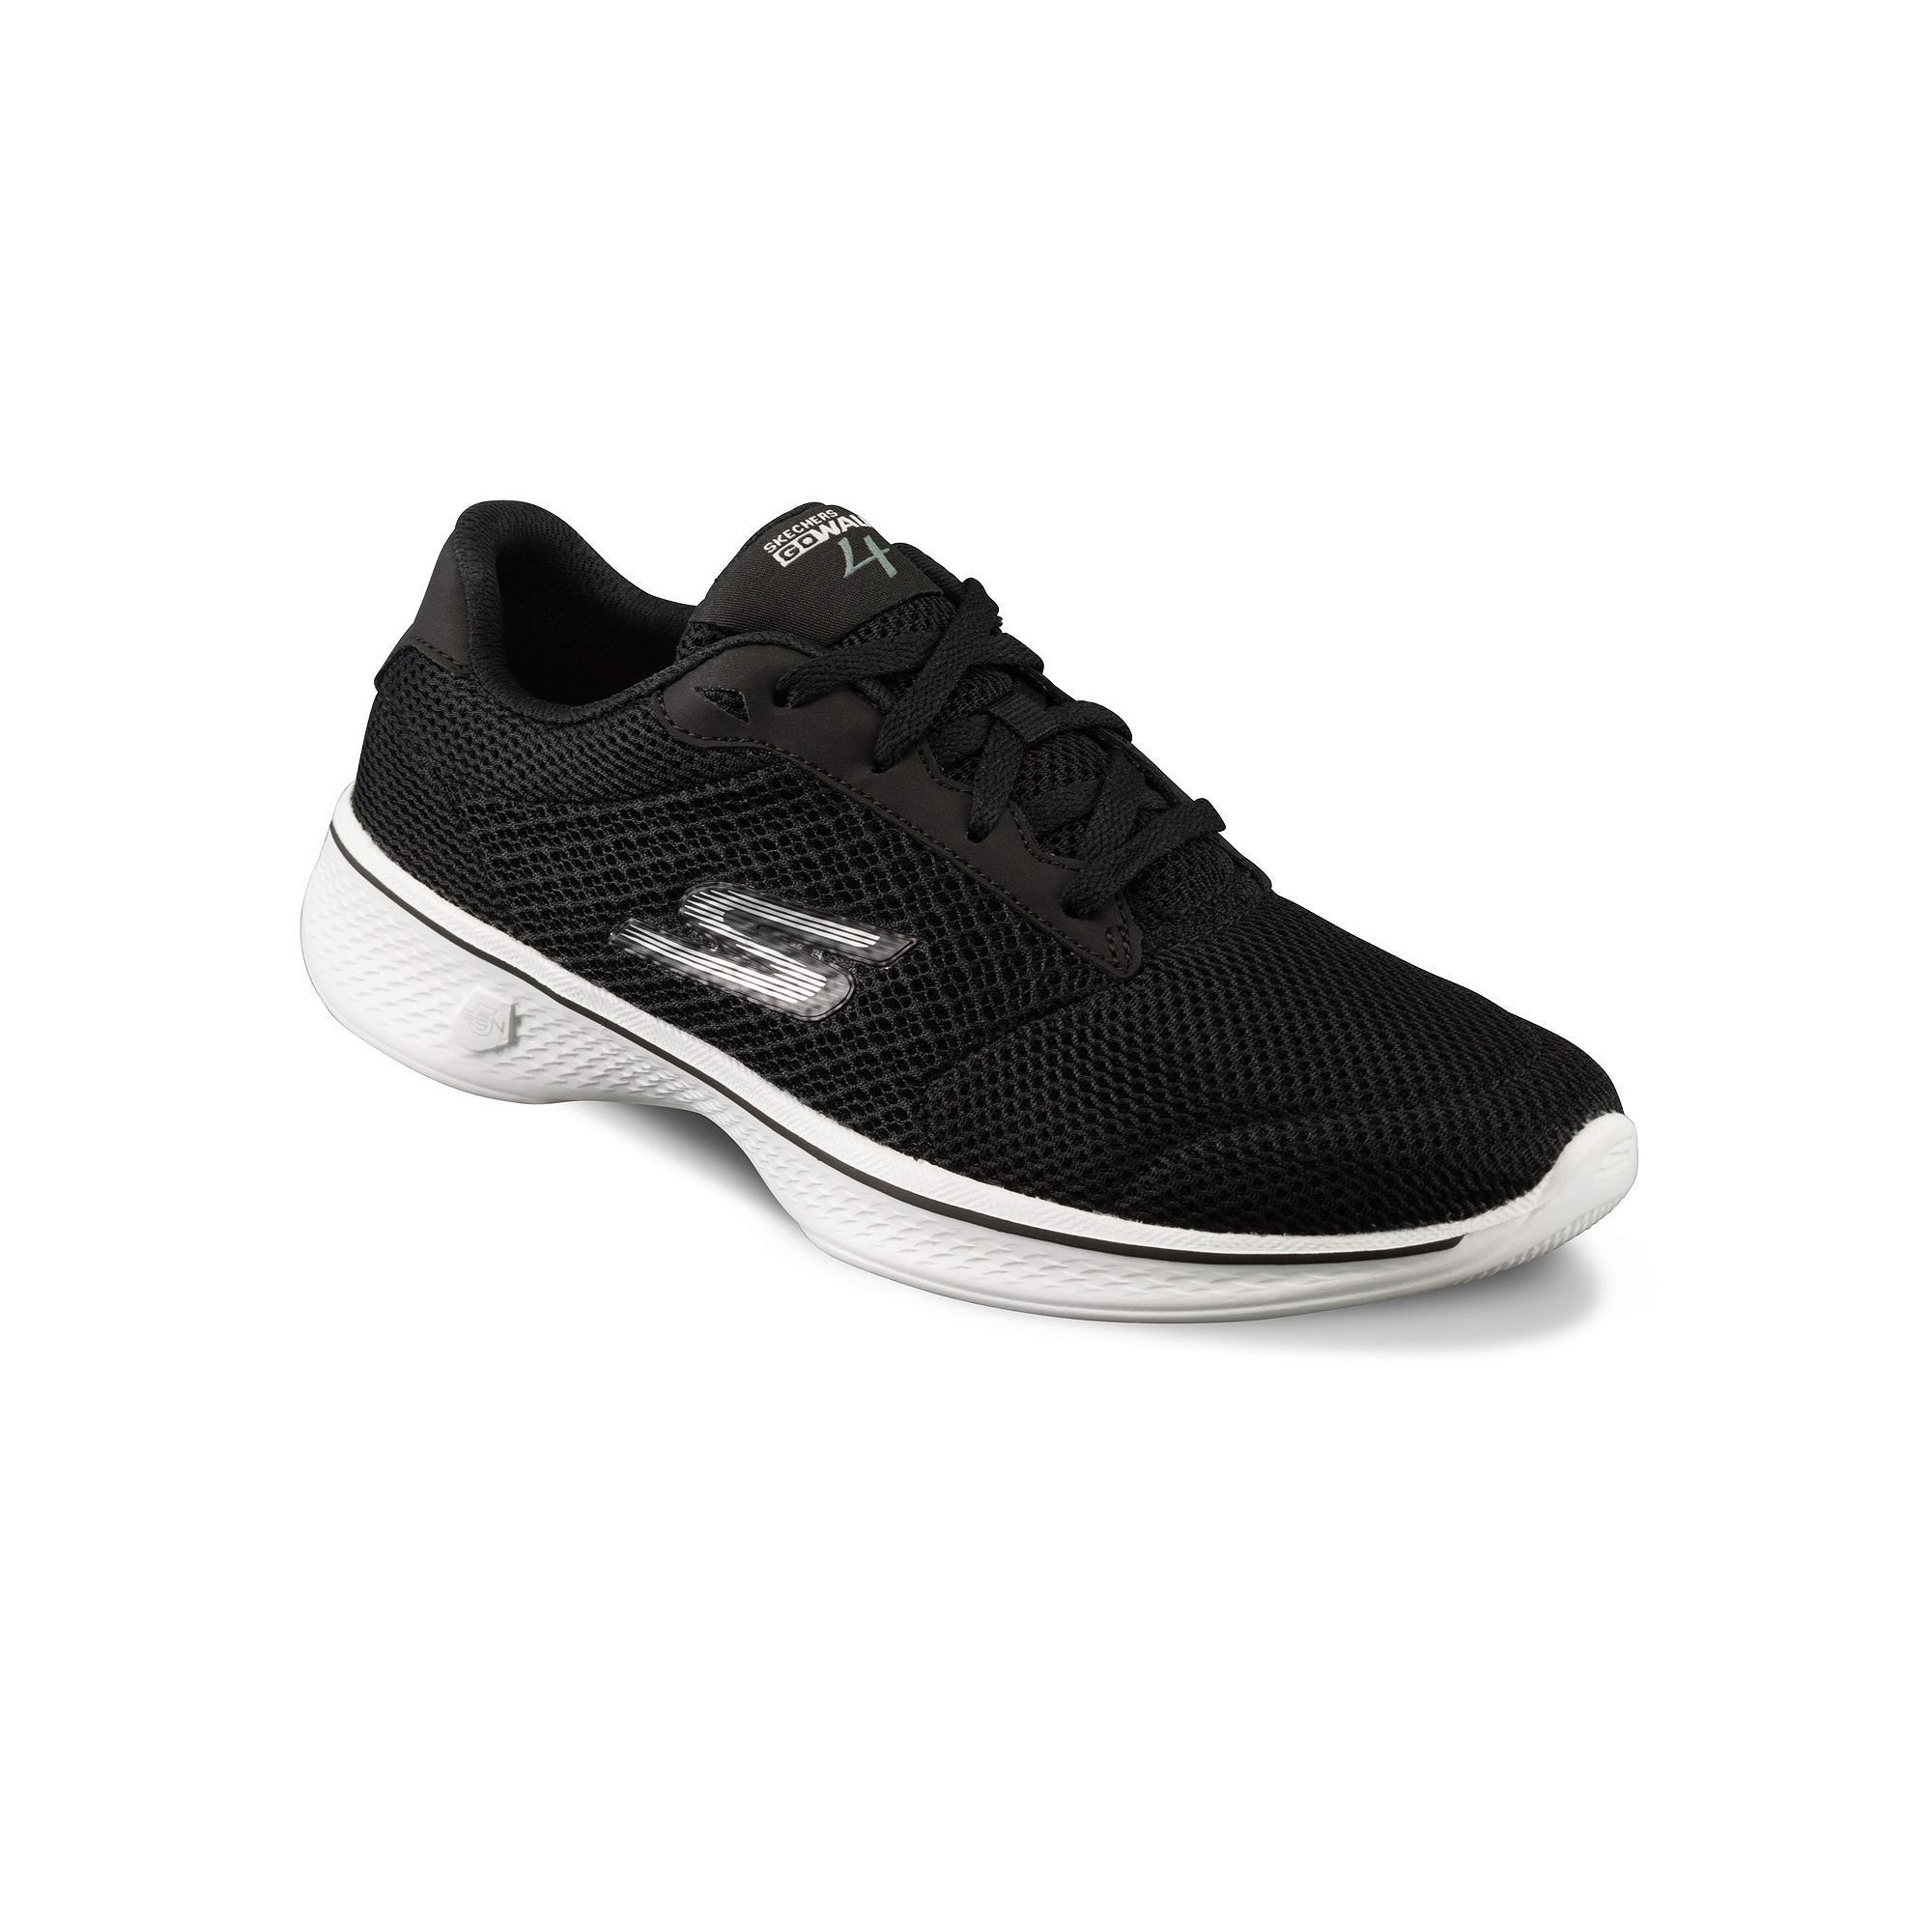 Skechers GOwalk 4 Incite Women's Sneakers | Products